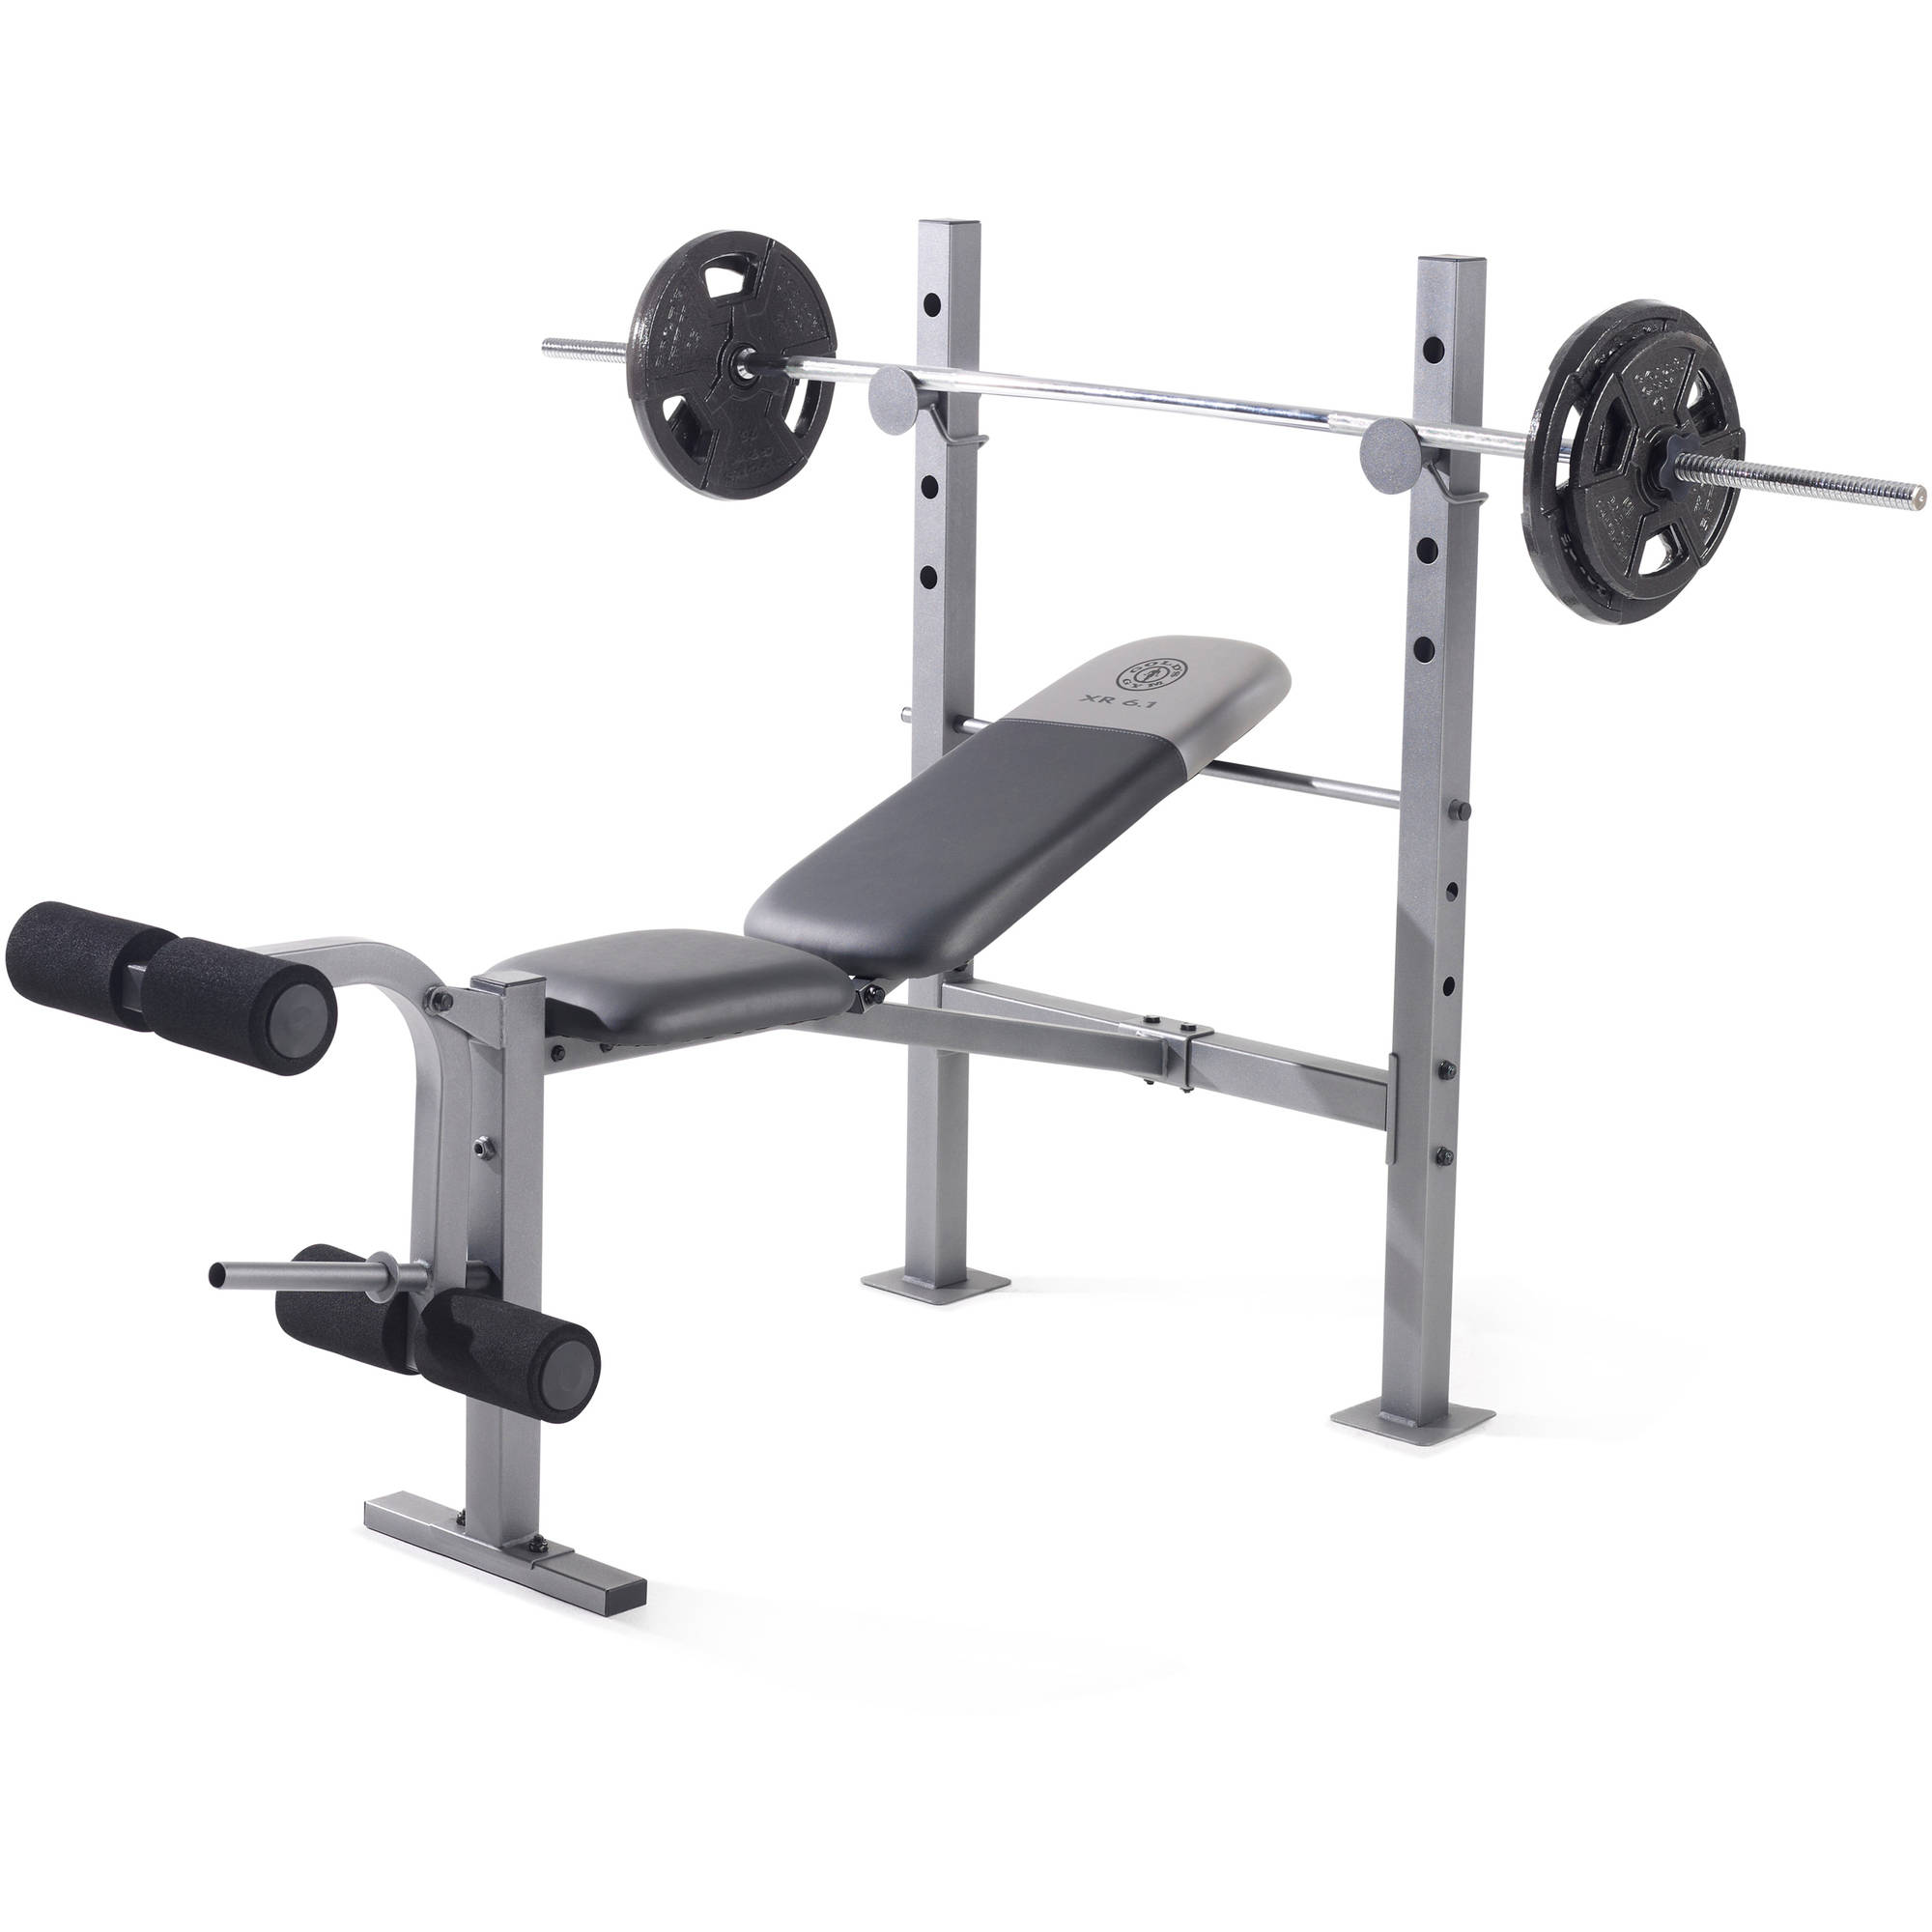 Weight Bench Olympic Set W Weights Adjustable Rack Workout Lifting Gym Fitness Ebay